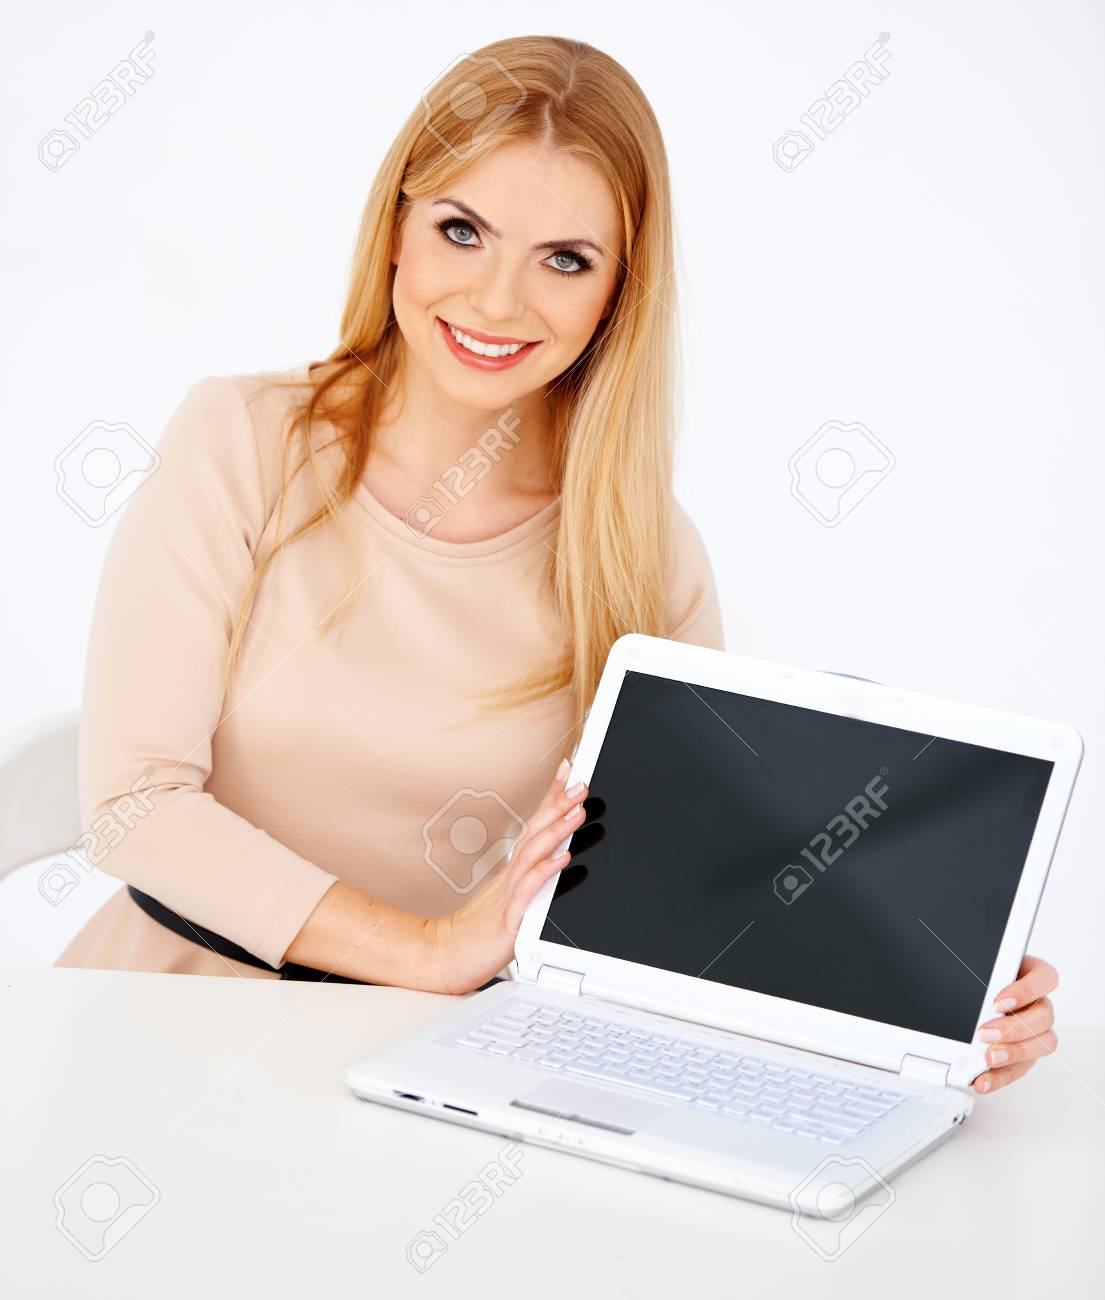 Pretty secretary sitting at desk and showing laptop Stock Photo - 17369653